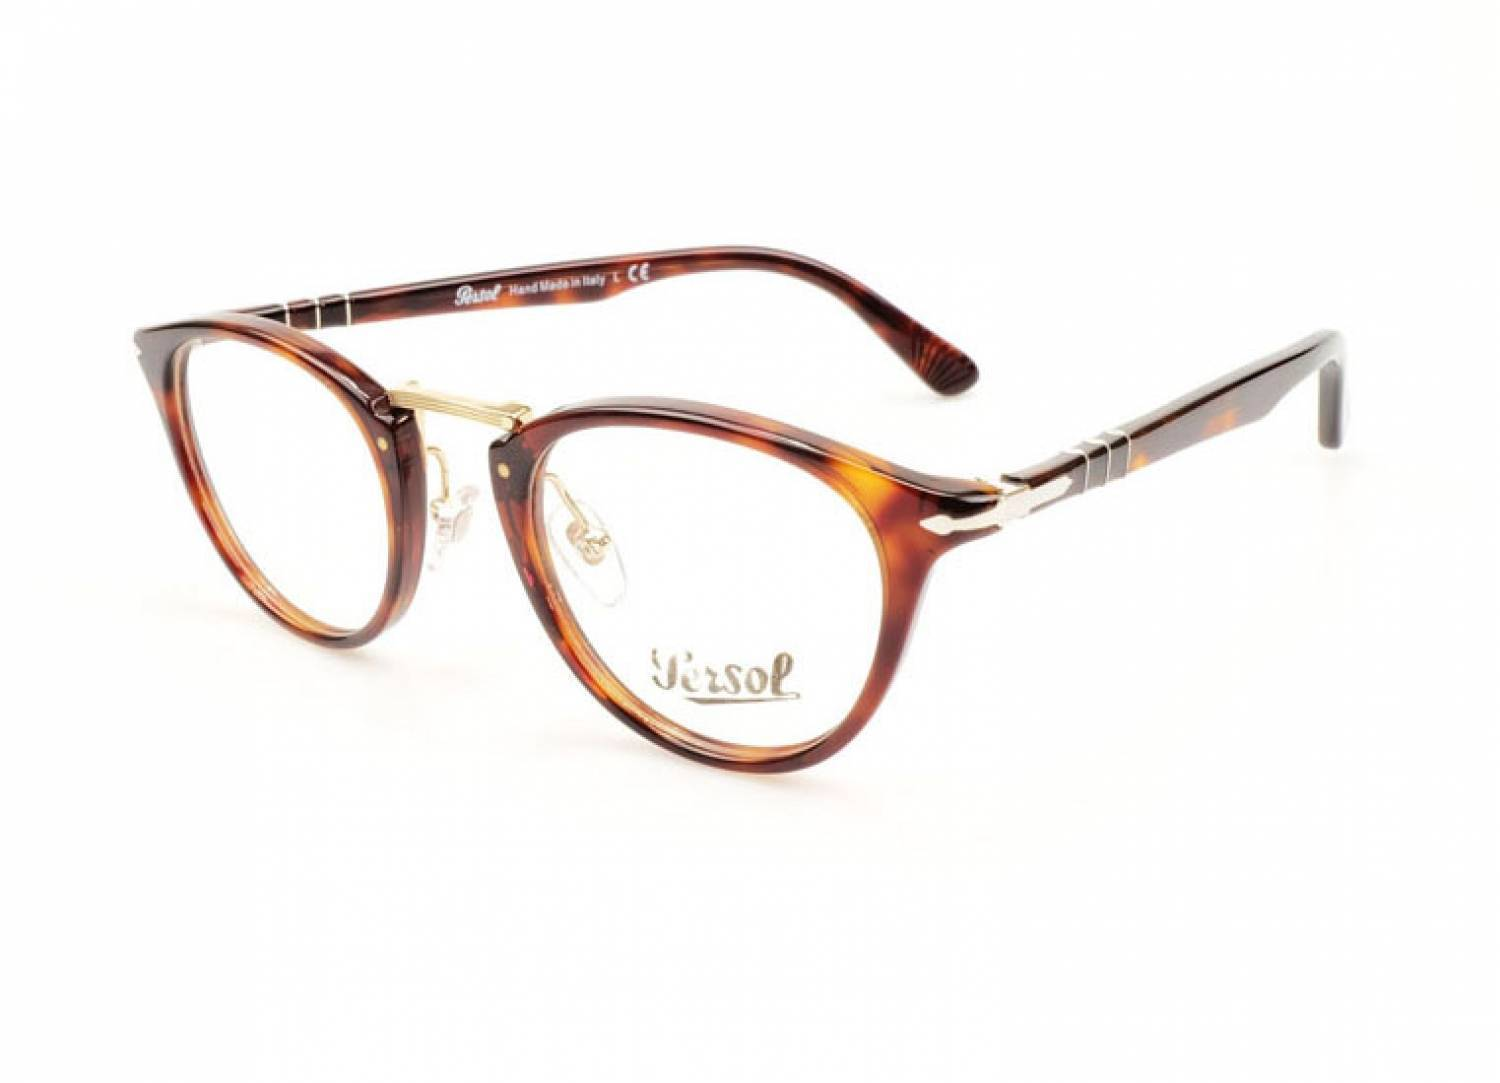 Persol Typewriter Edition 3107-V 24